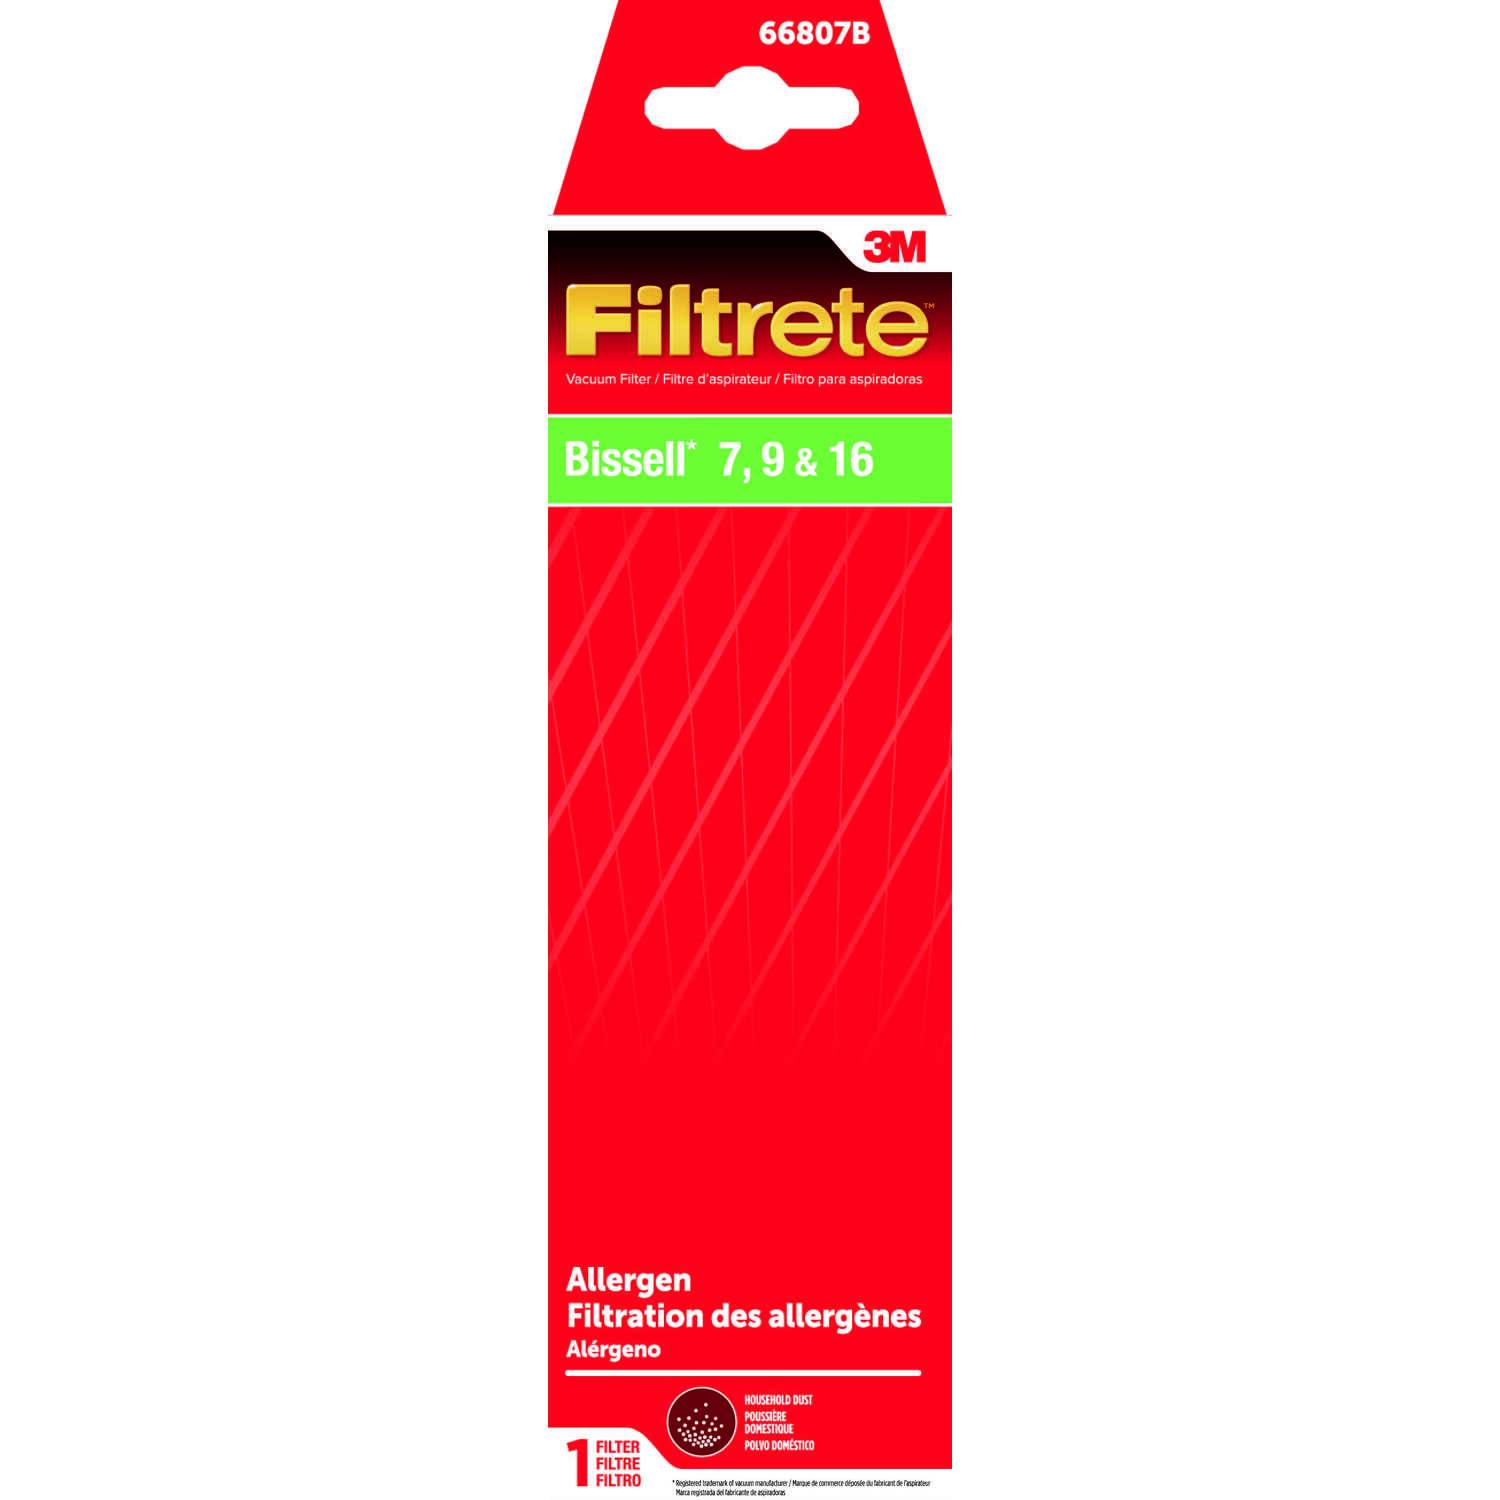 3M  Filtrete  Vacuum Filter  For Bissell 7-9-16 1 pk